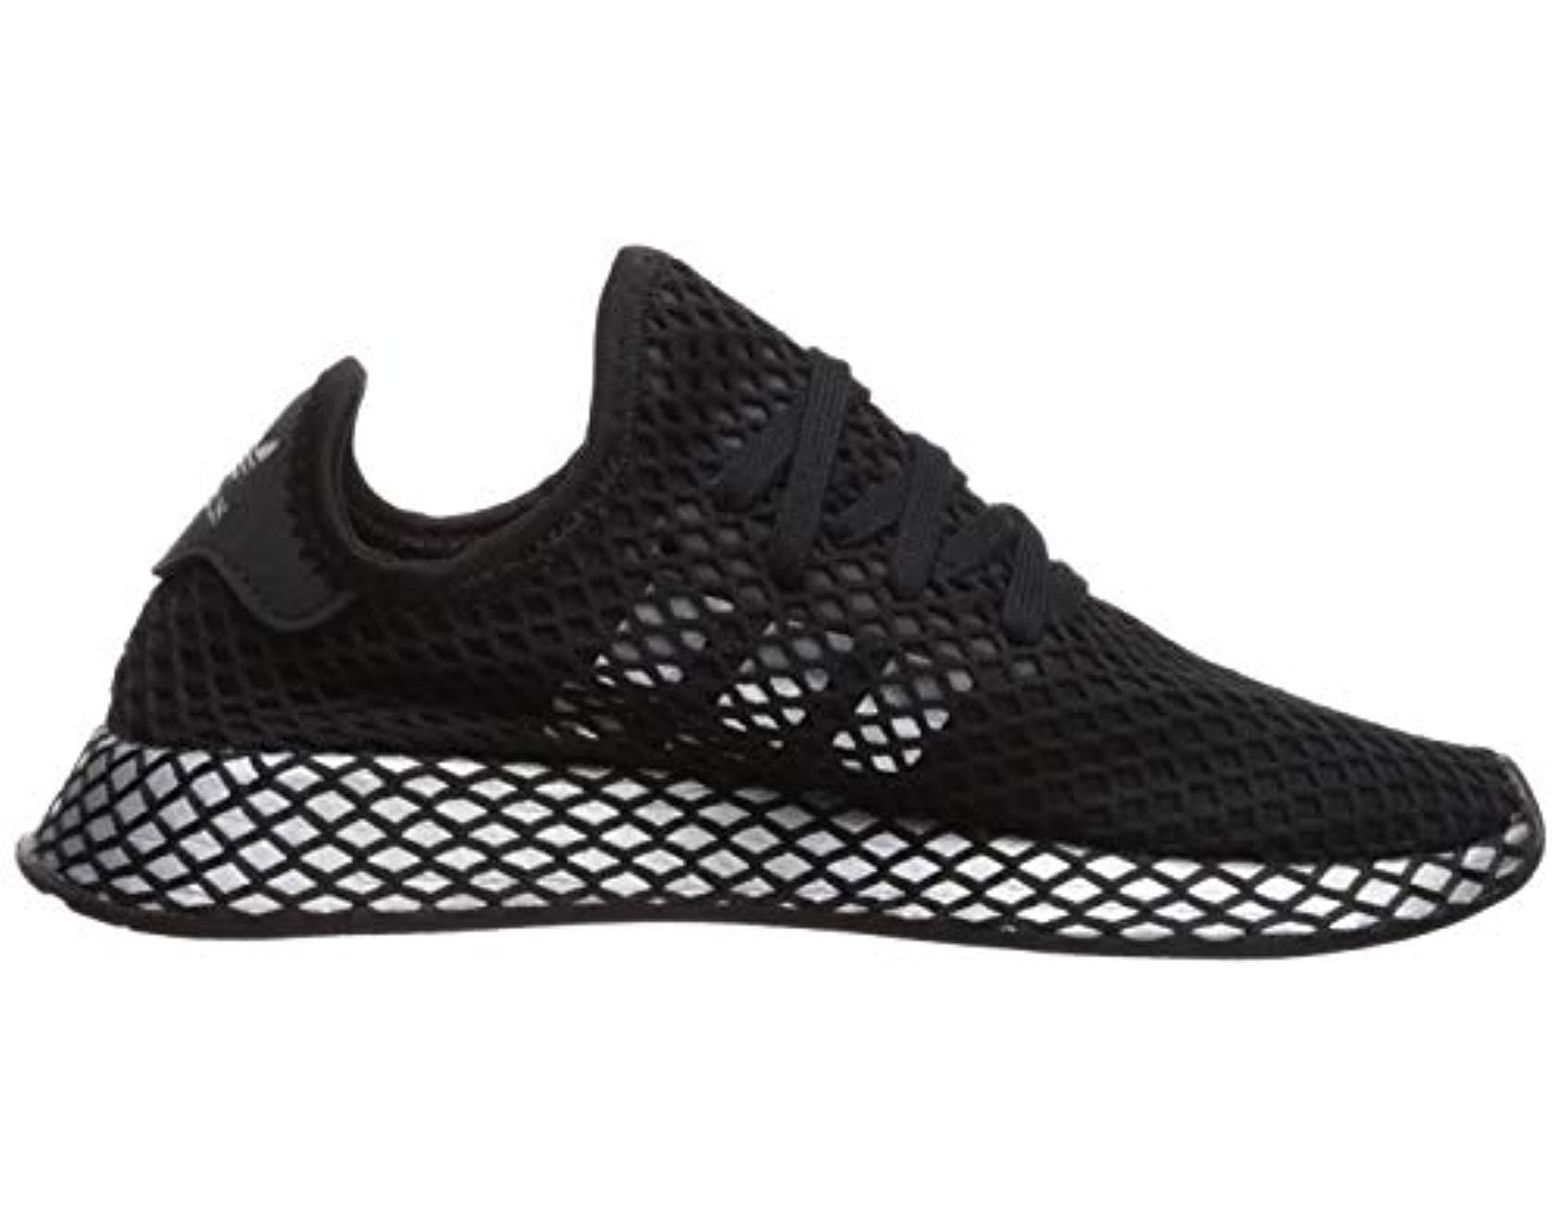 c043568fbc970 Women's Black Deerupt Runner